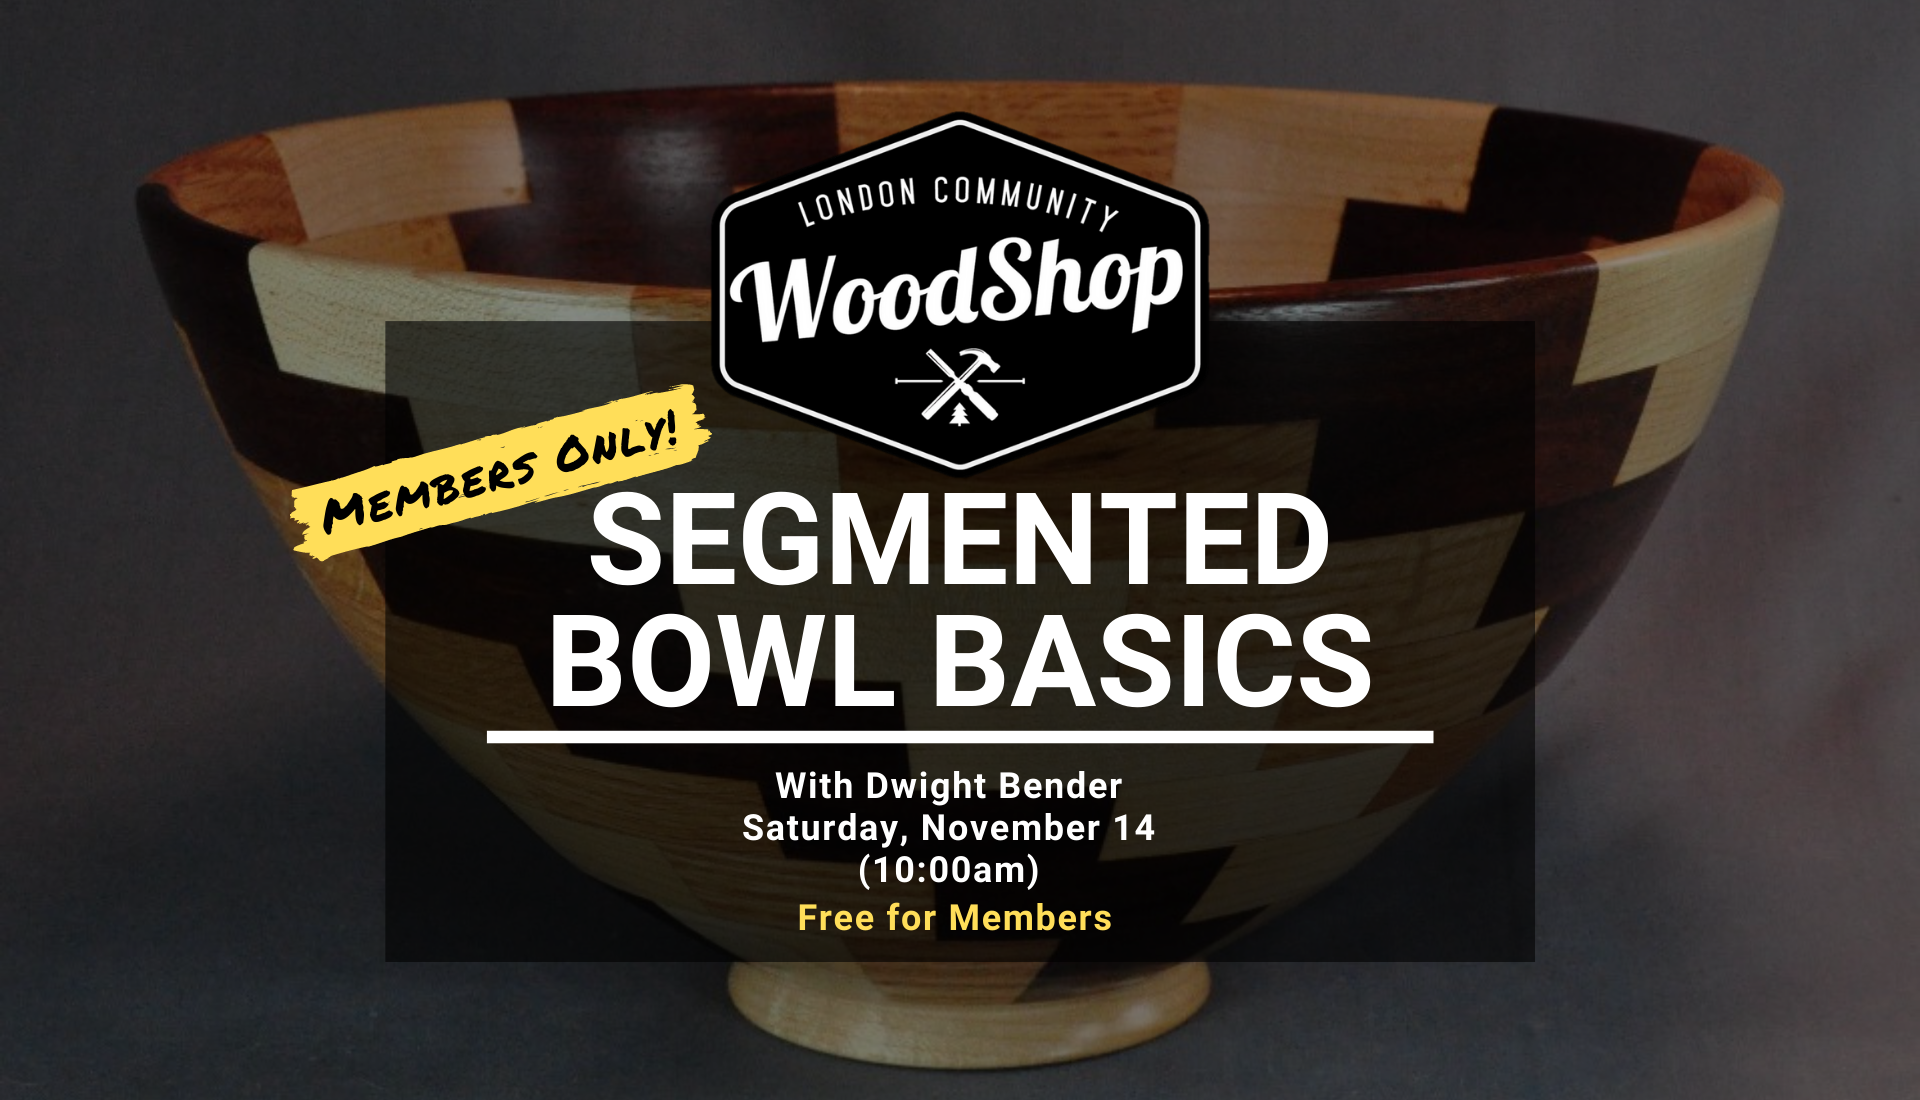 Segmented Bowl Basics - Saturday November 14